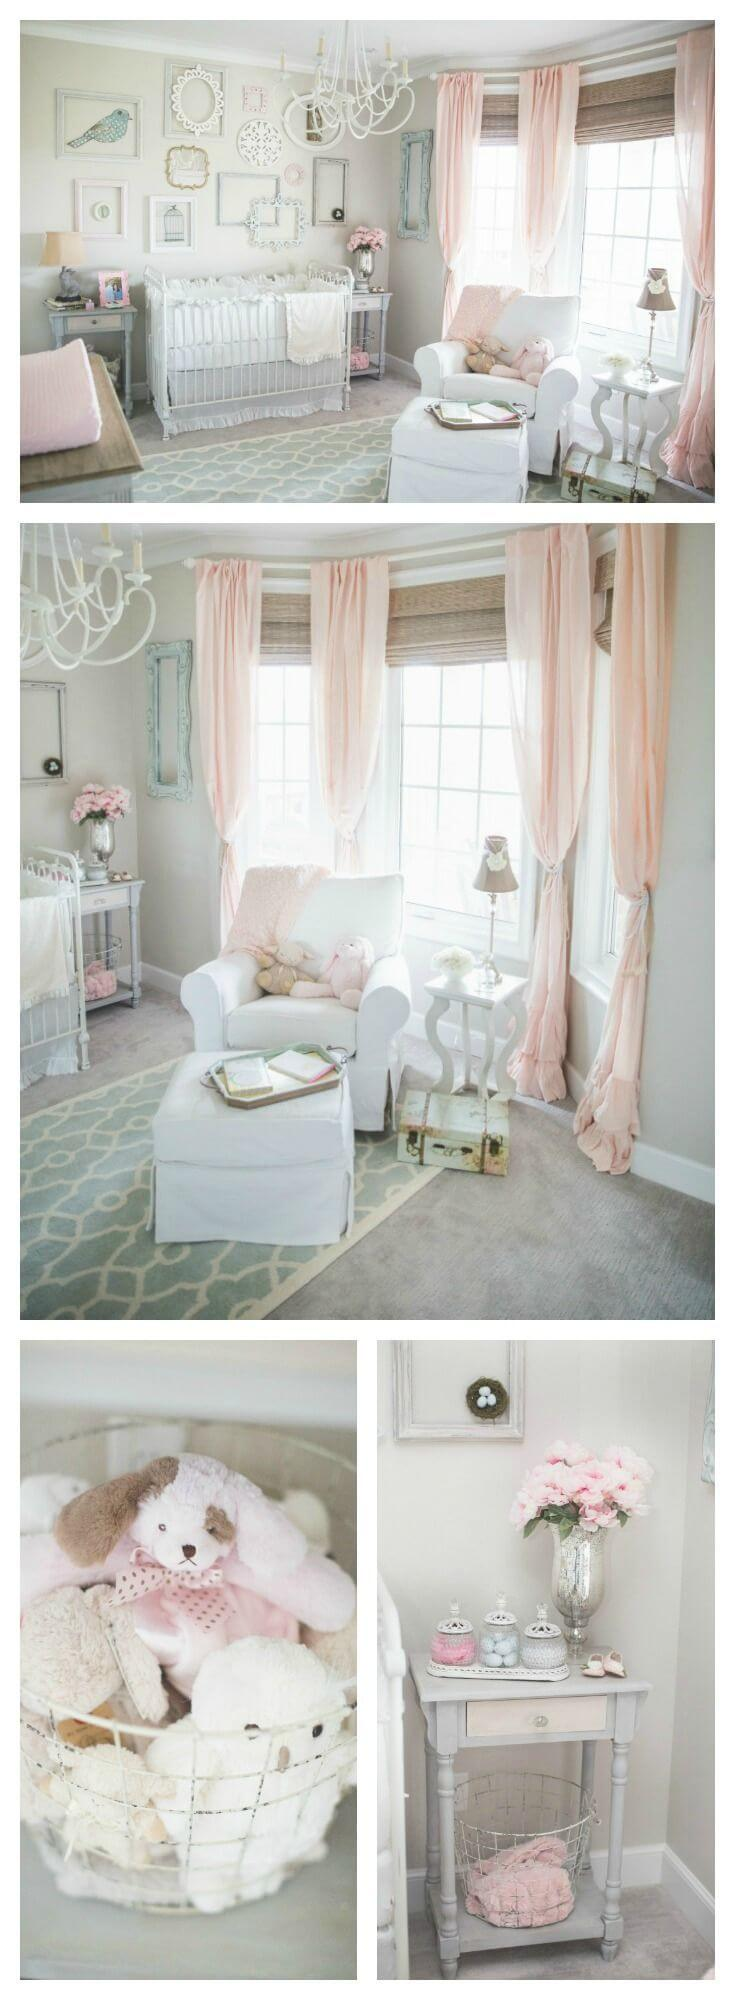 Shabby Chic Works In the Nursery Too